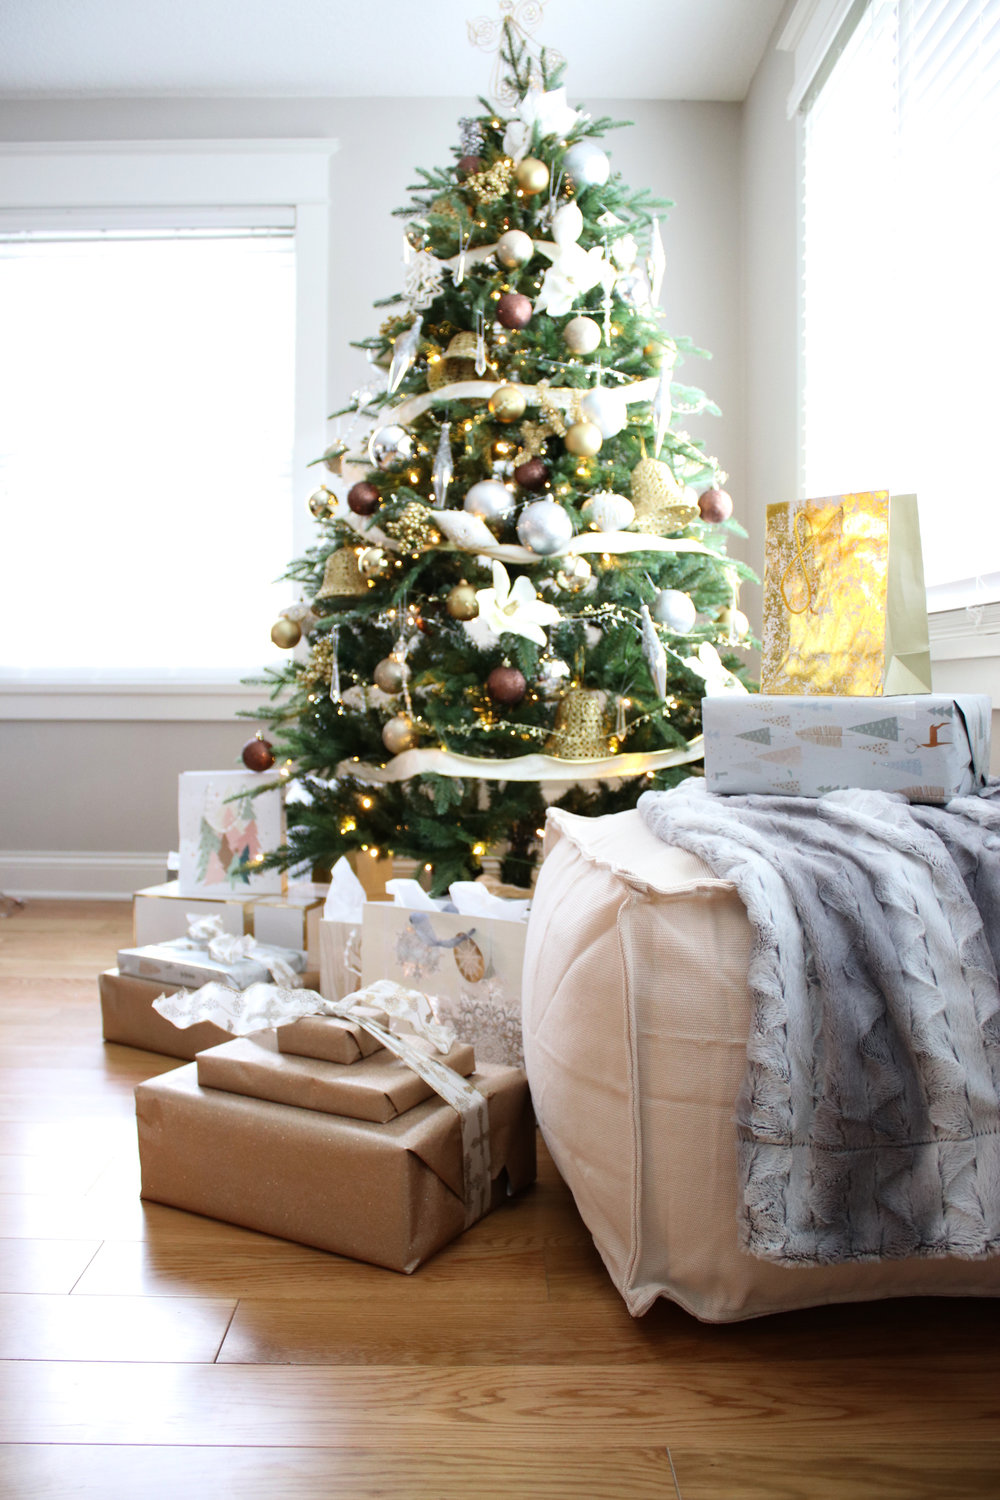 Christmas Tree & Gifts.jpg